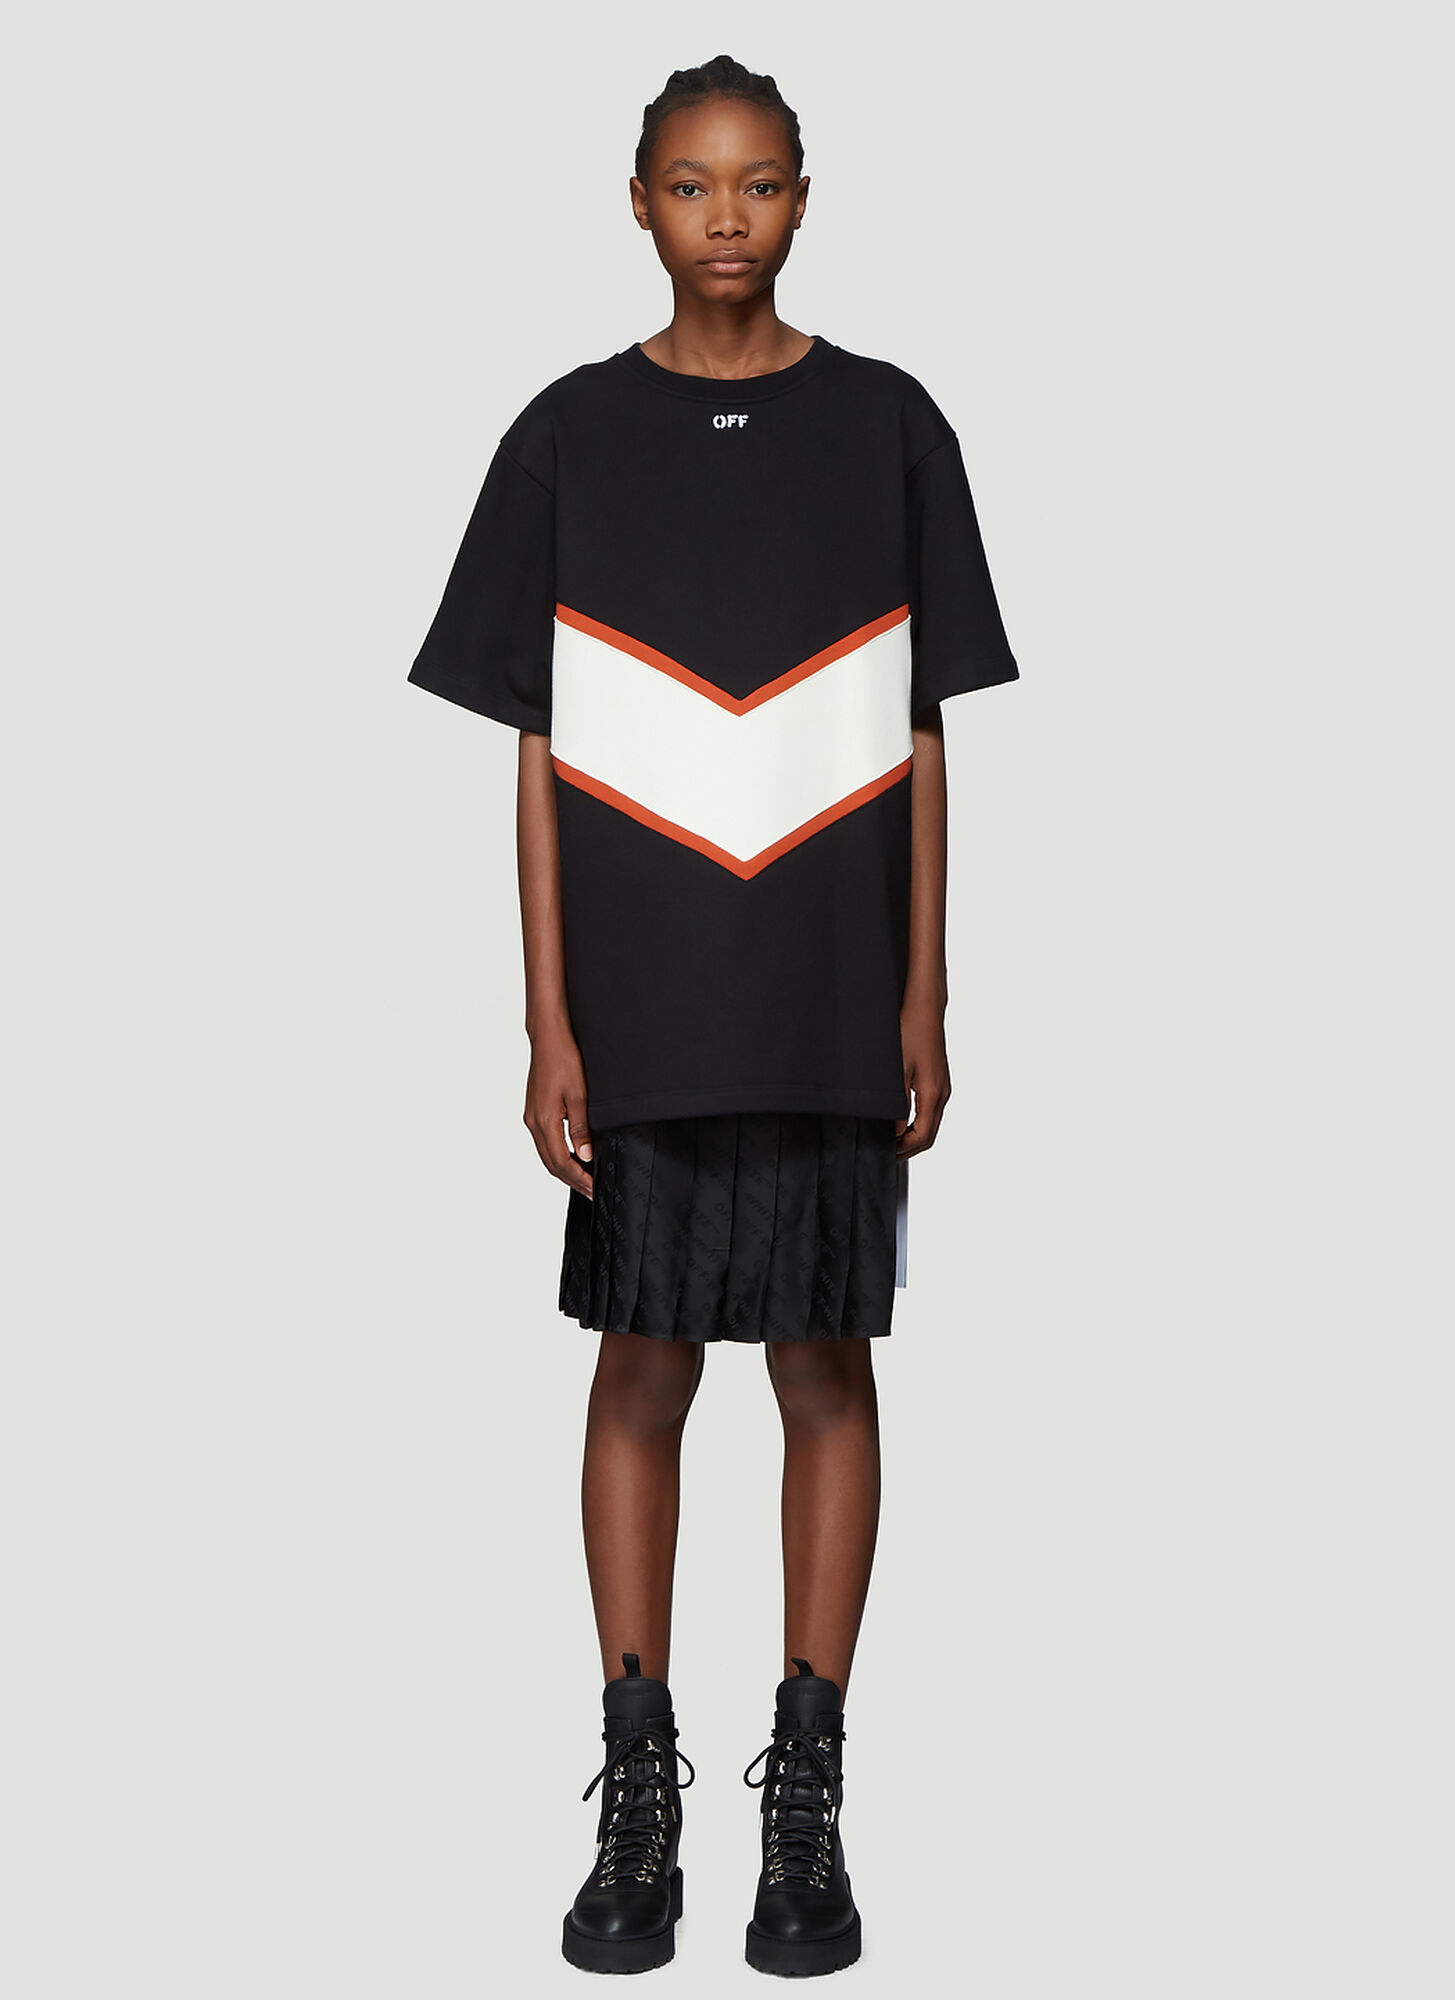 Off-White Intarsia Sweatshirt Dress in Black